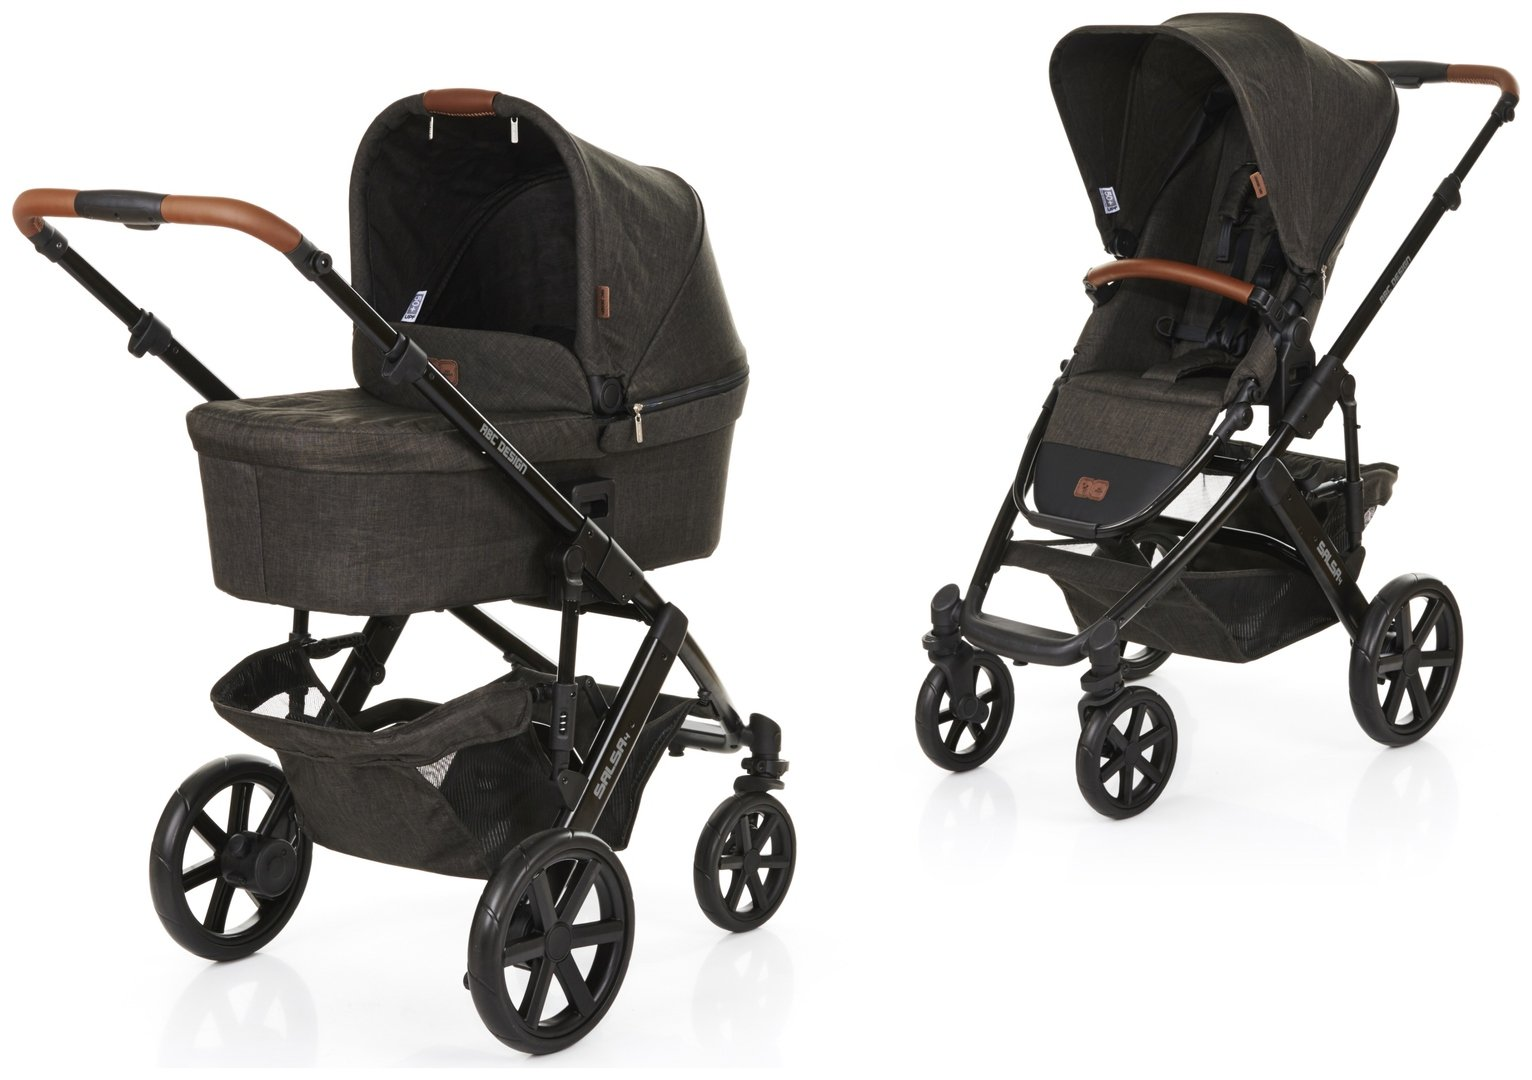 Image of ABC Design Salsa 4 Pushchair and Carrycot - Piano